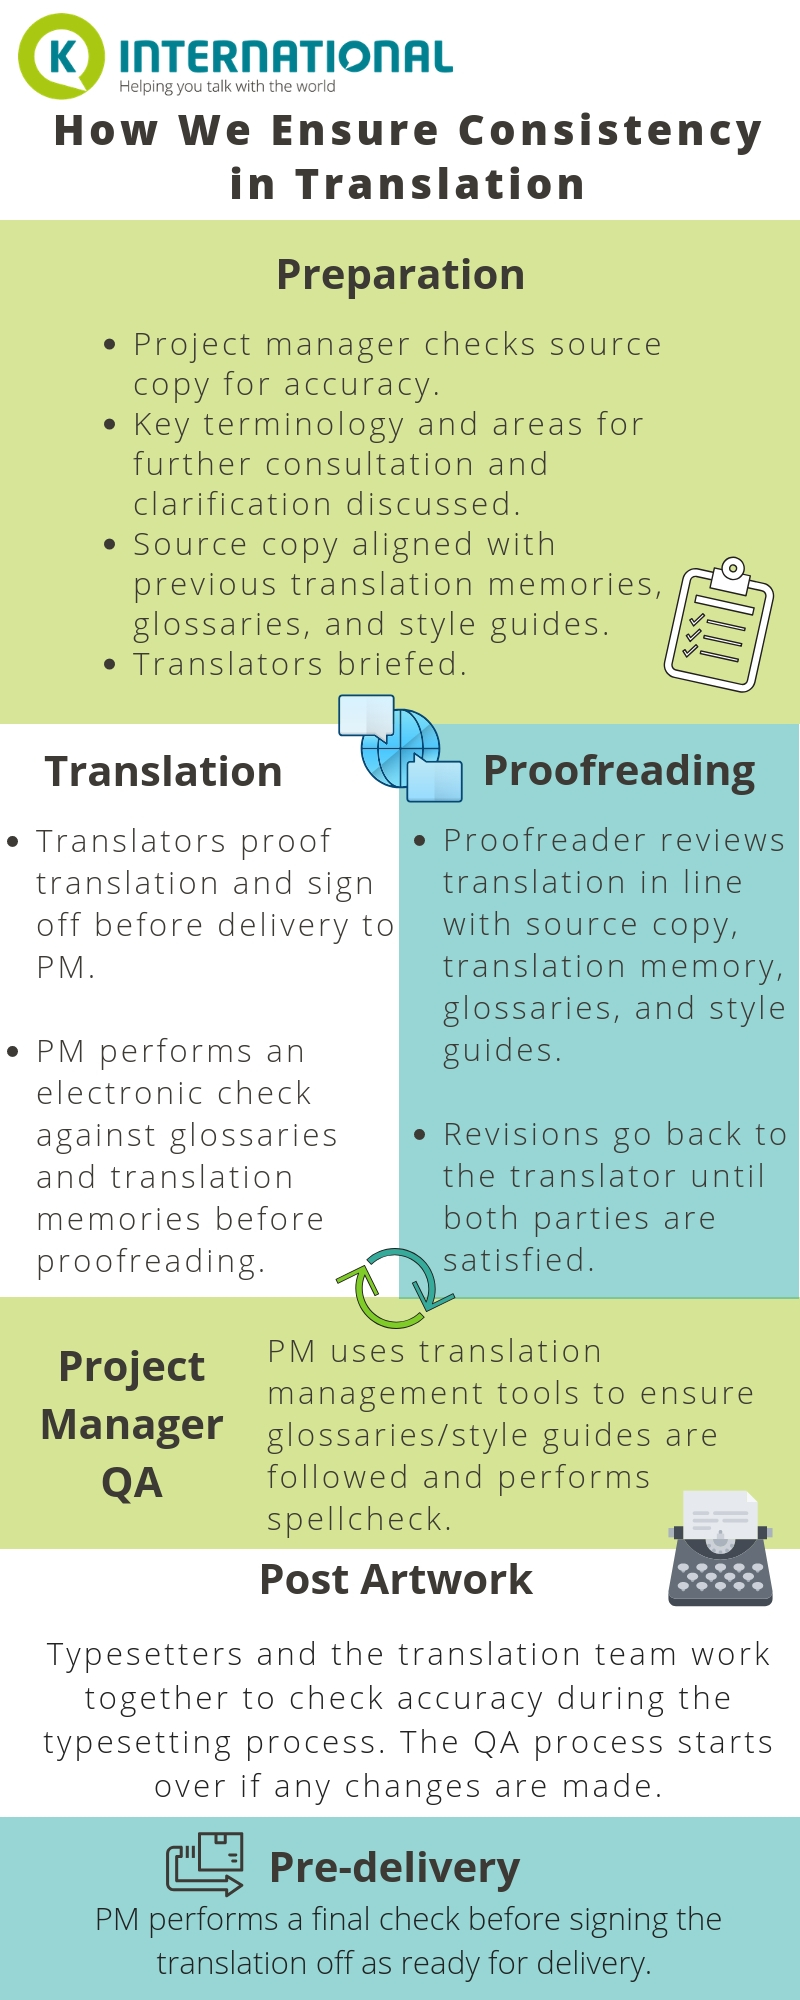 how we ensure consistency in translation